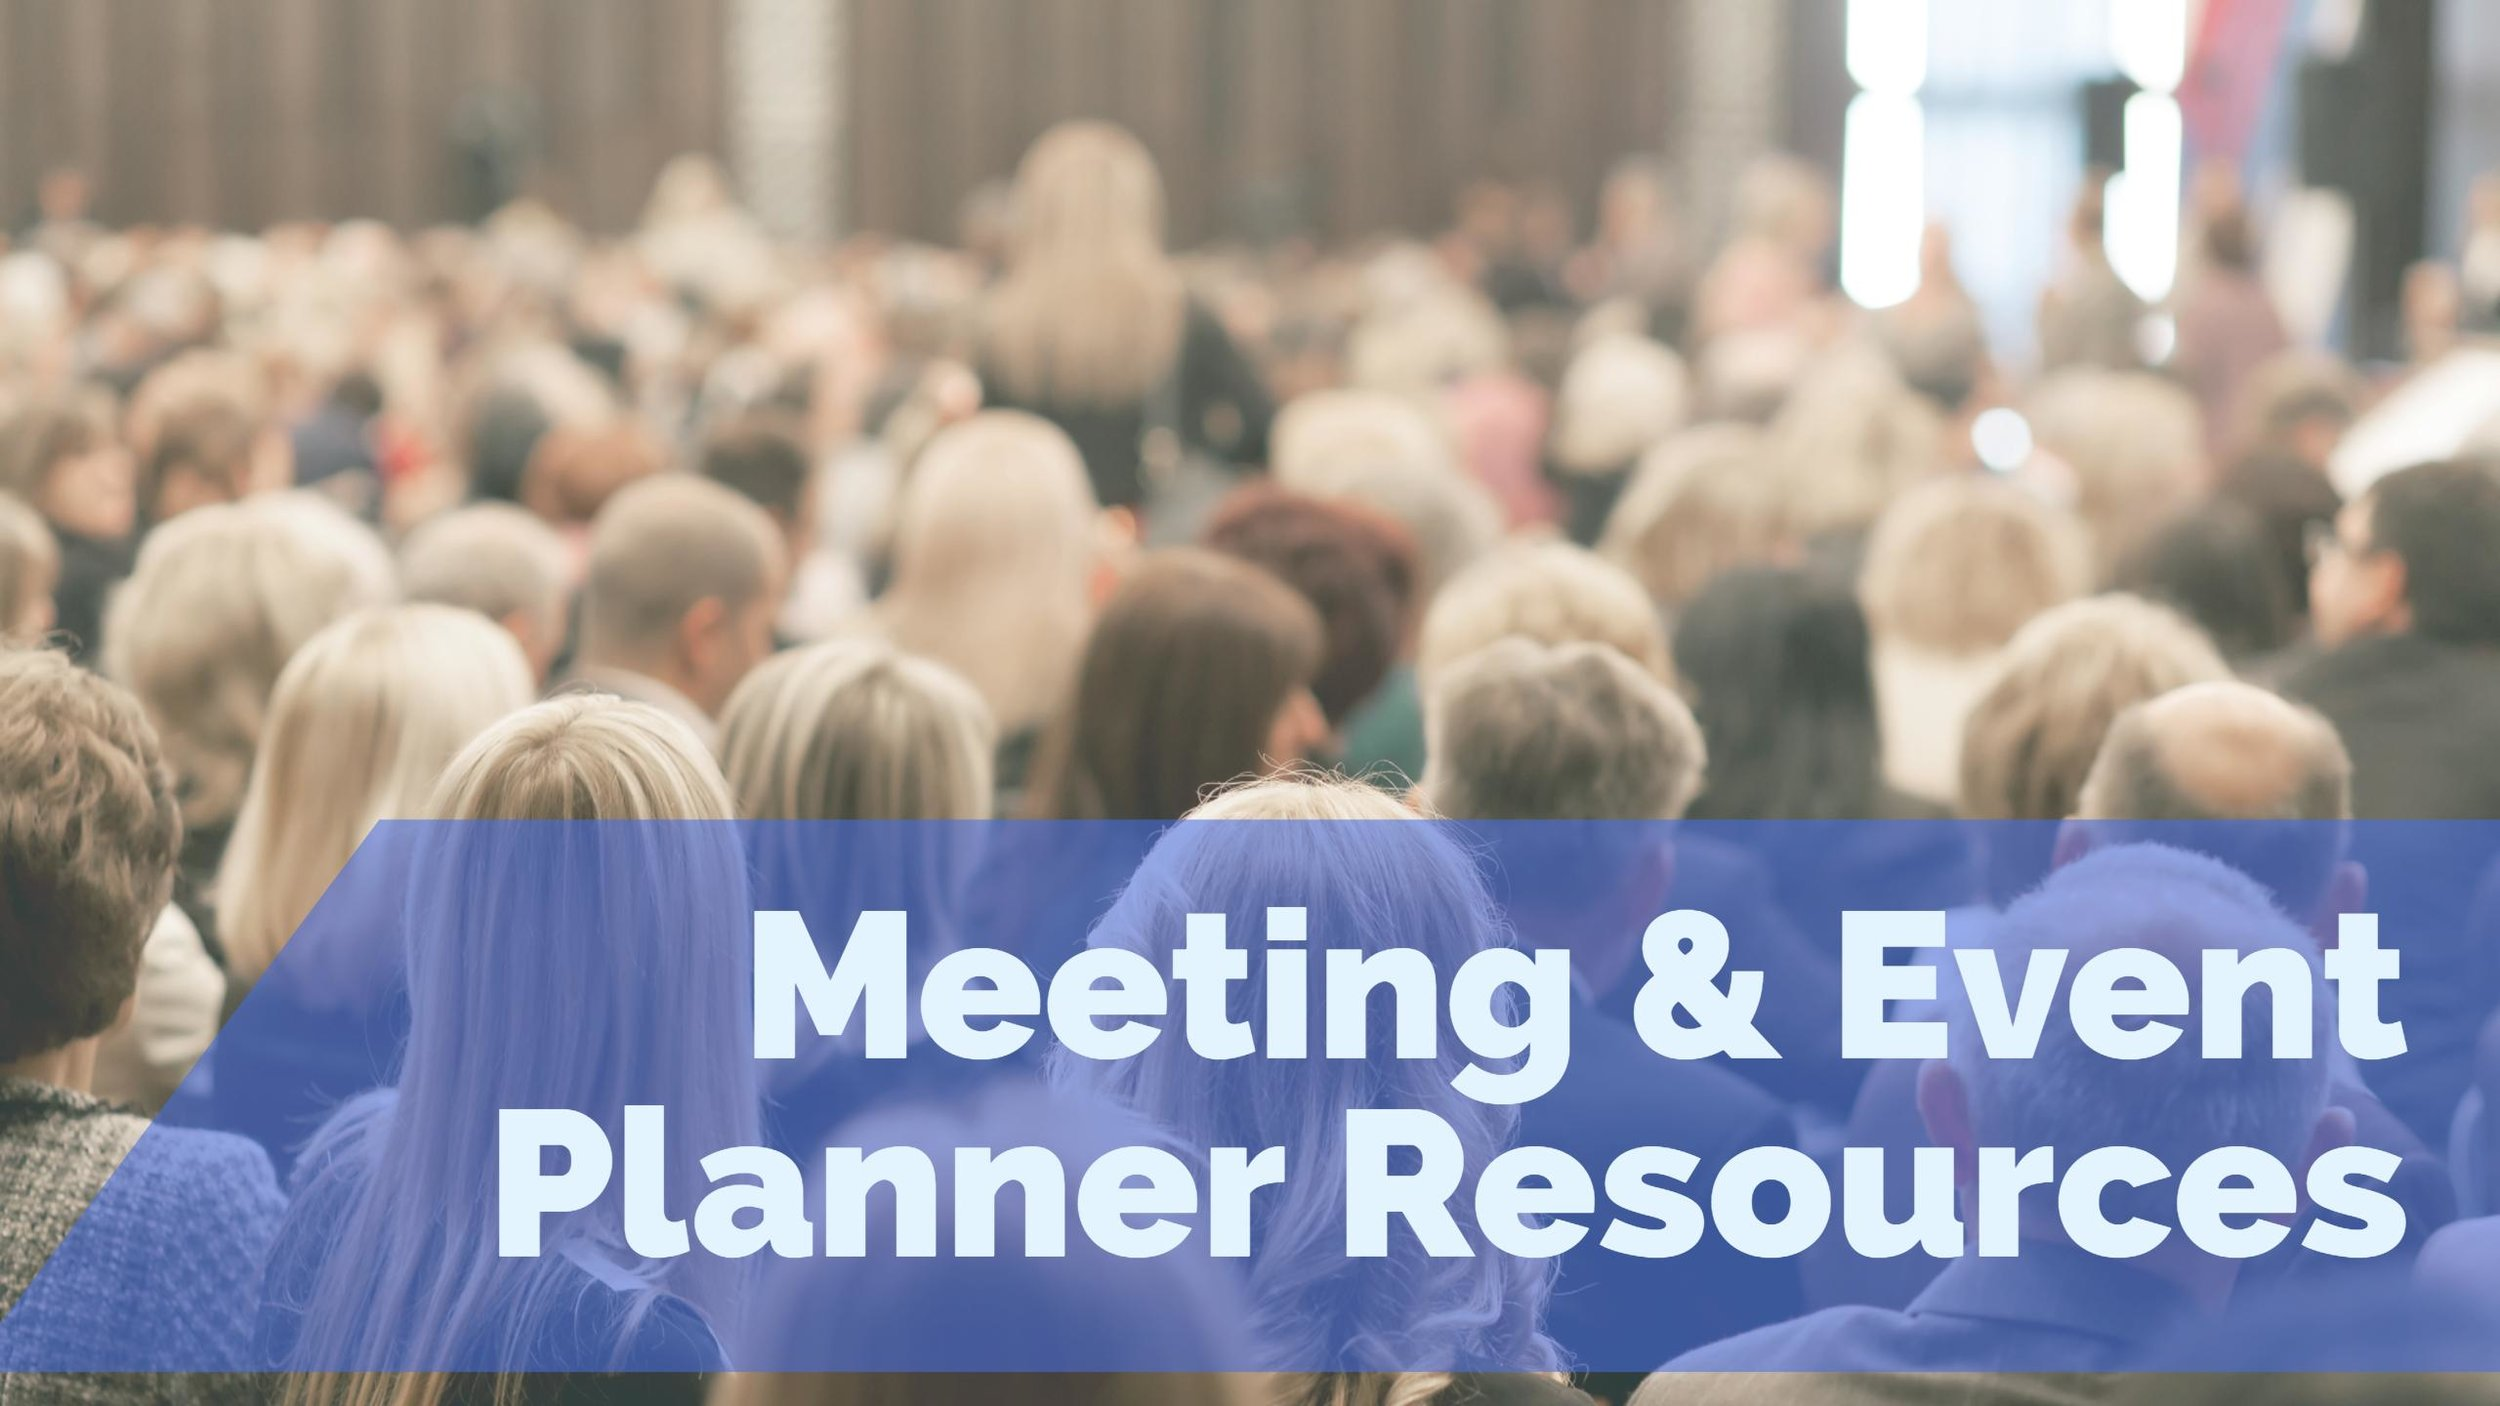 Meeting & Event Planner Resources